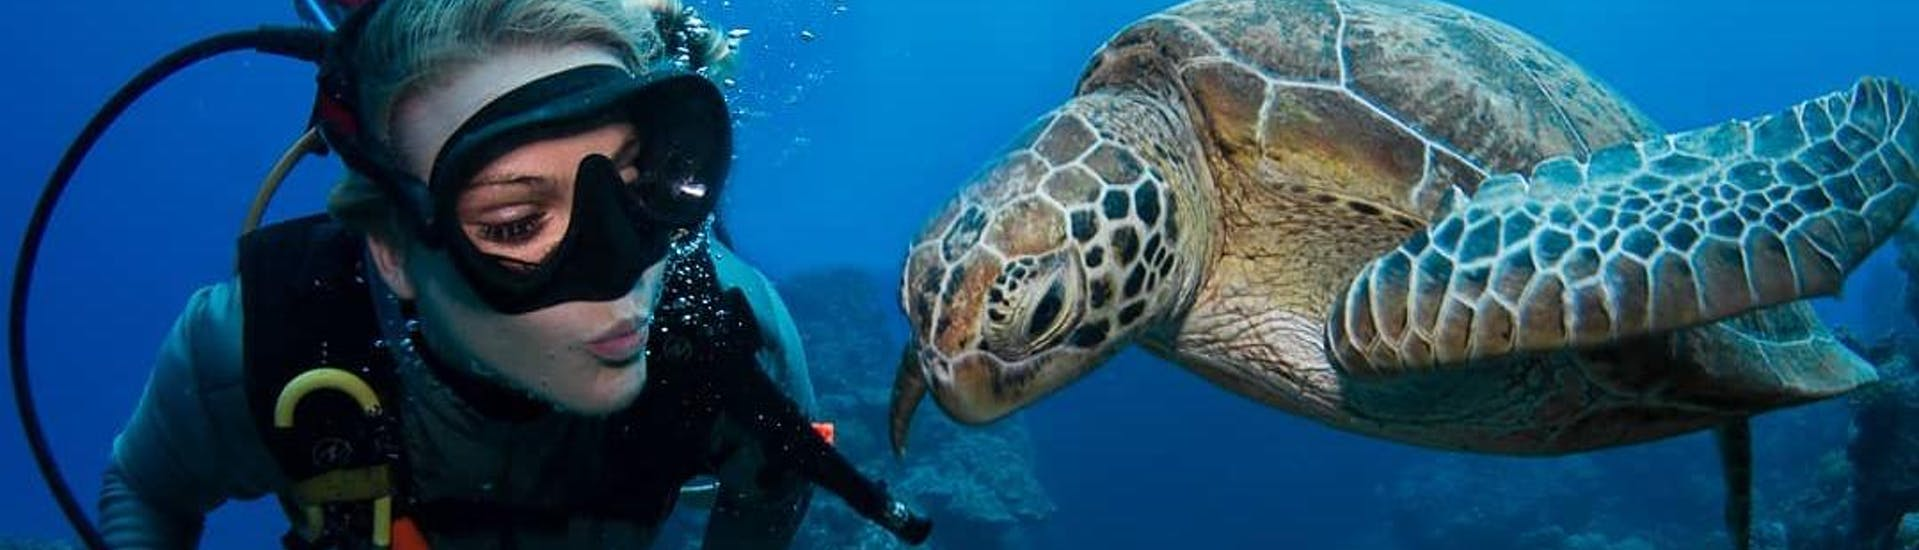 During the Discover Scuba Diving on the Great Barrier Reef for Beginner organised by Passions of Paradise, a woman is enjoying the attention of a sea turtle.